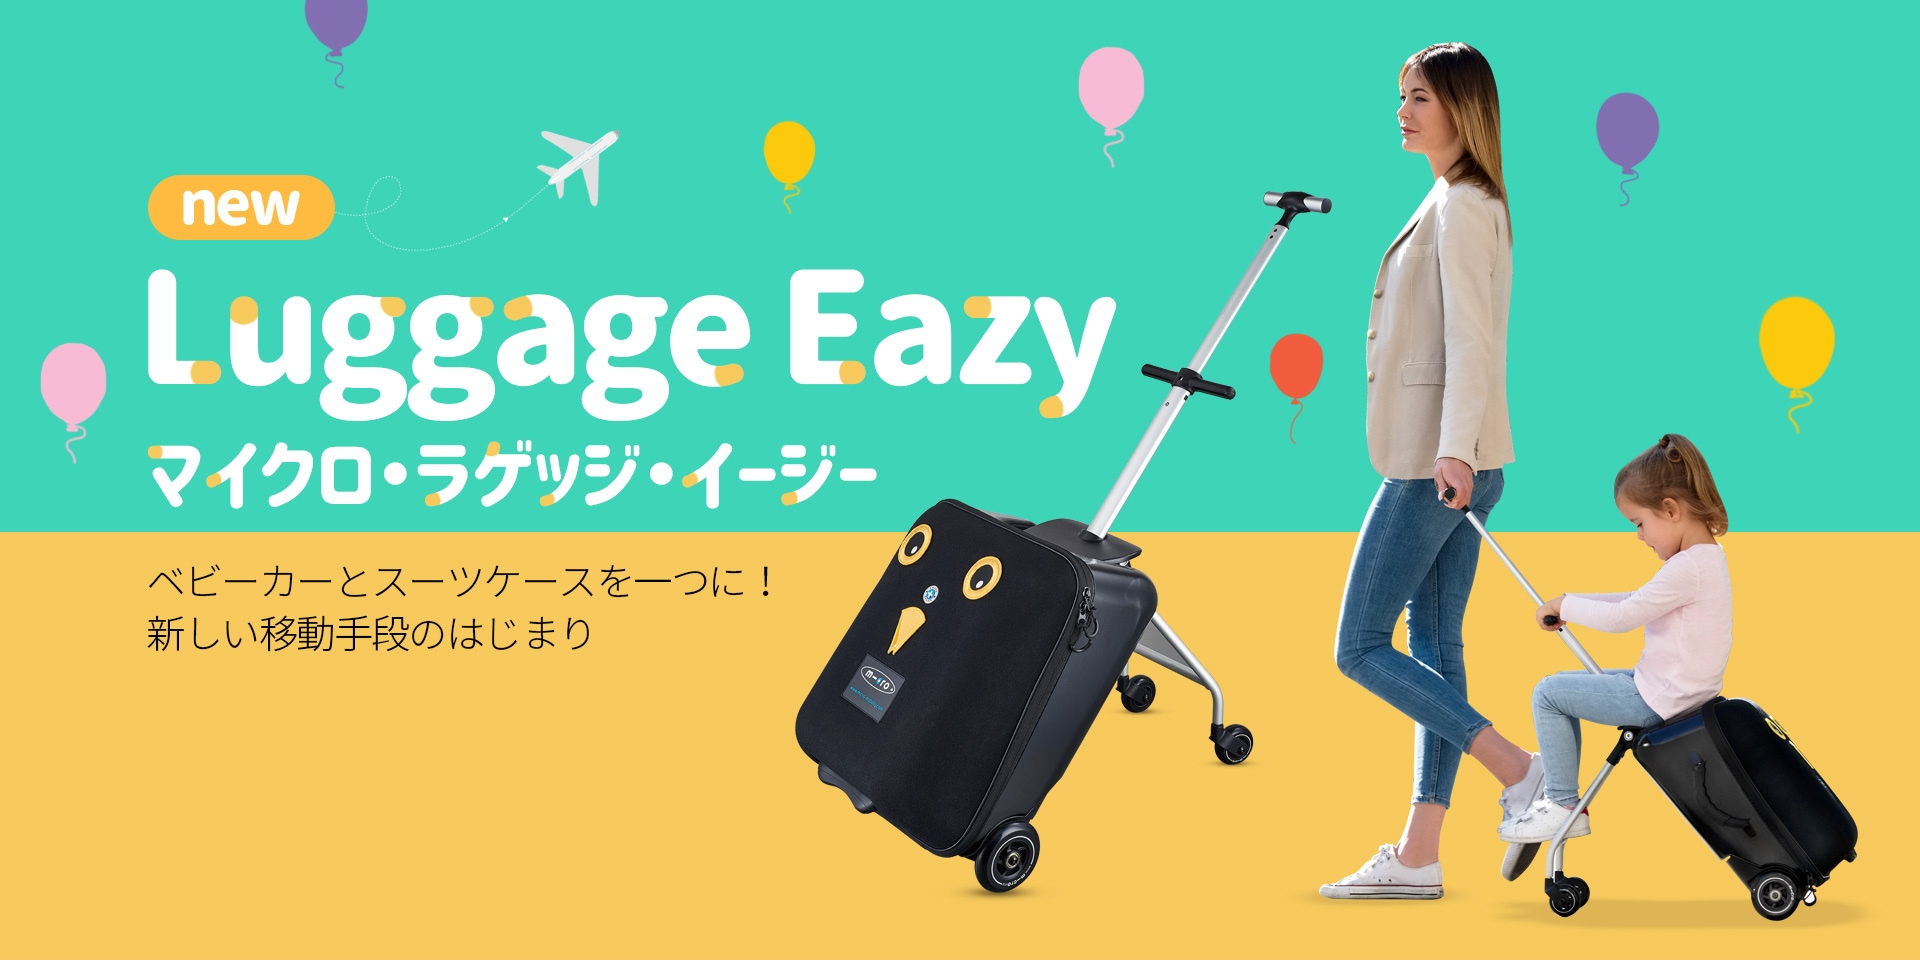 LuggageEazy